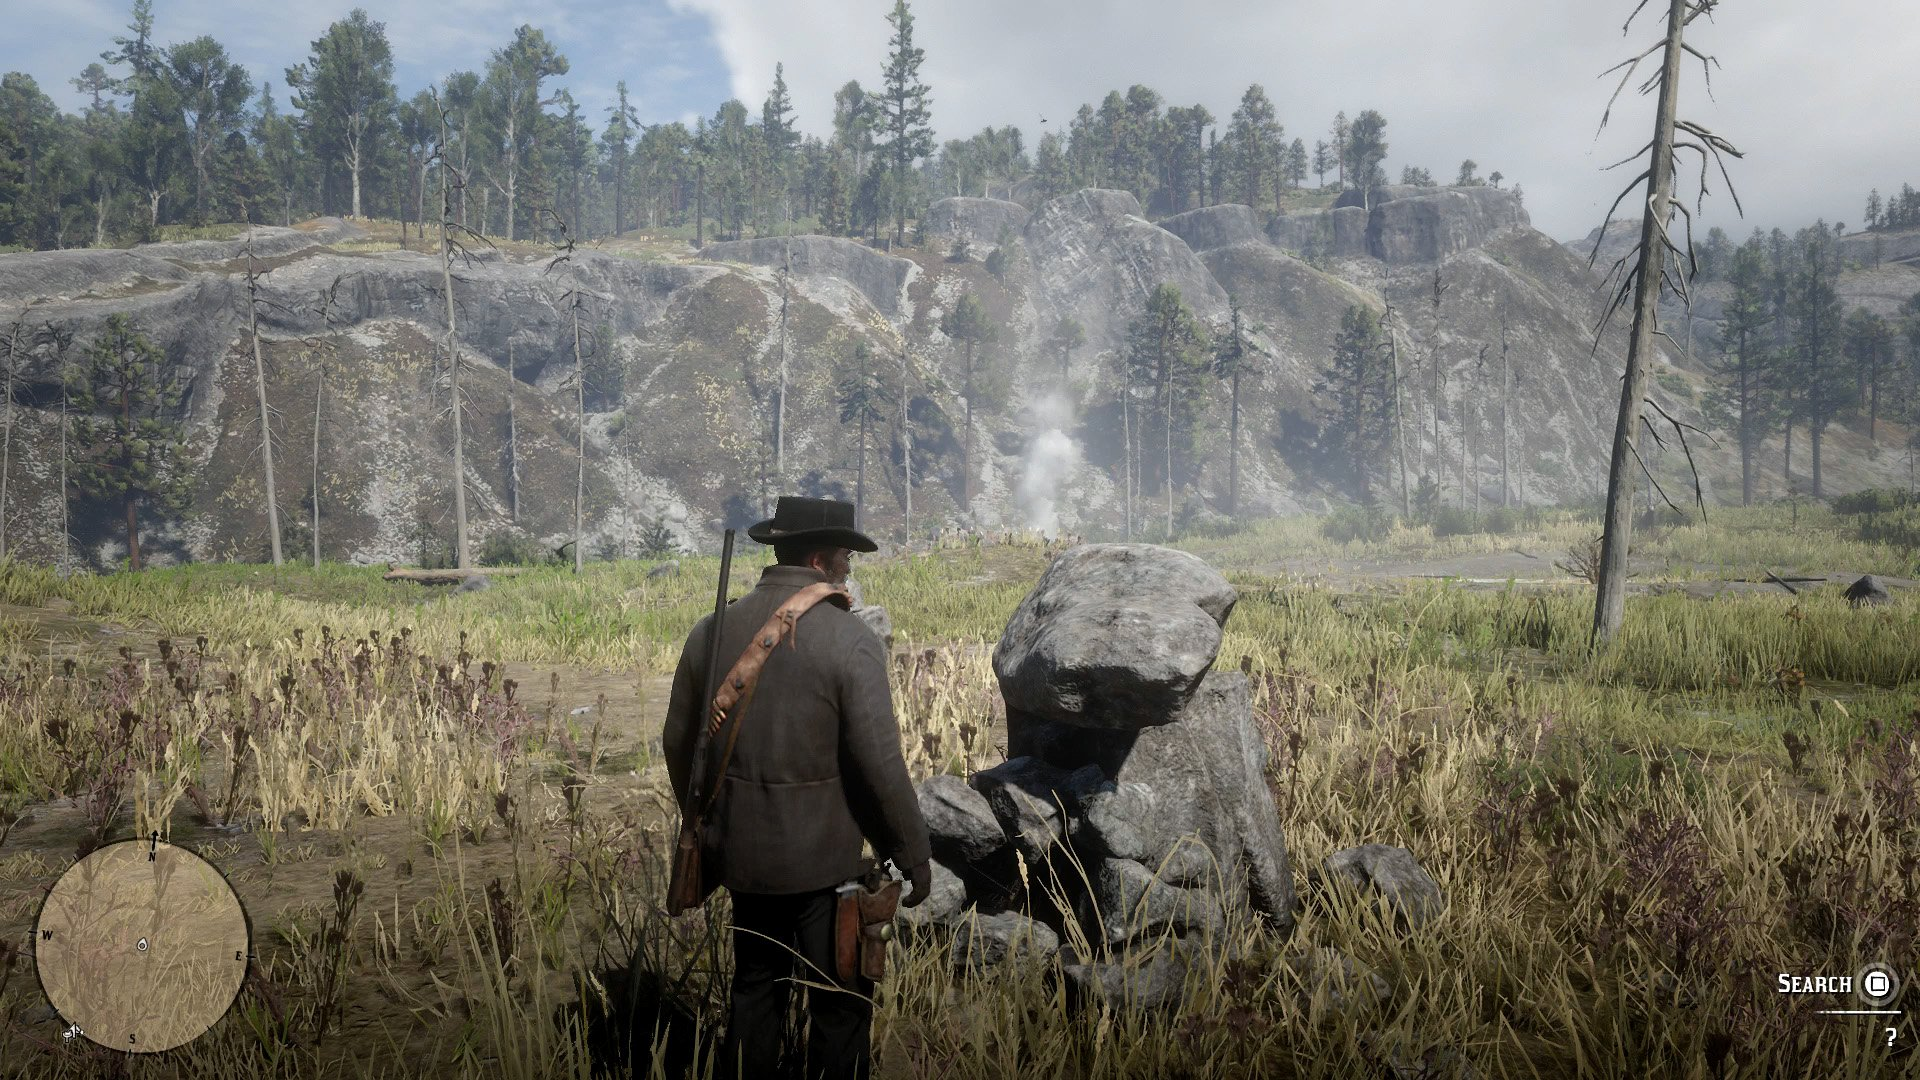 Red Dead Redemption 2 Has Made $725 Million in Three Days